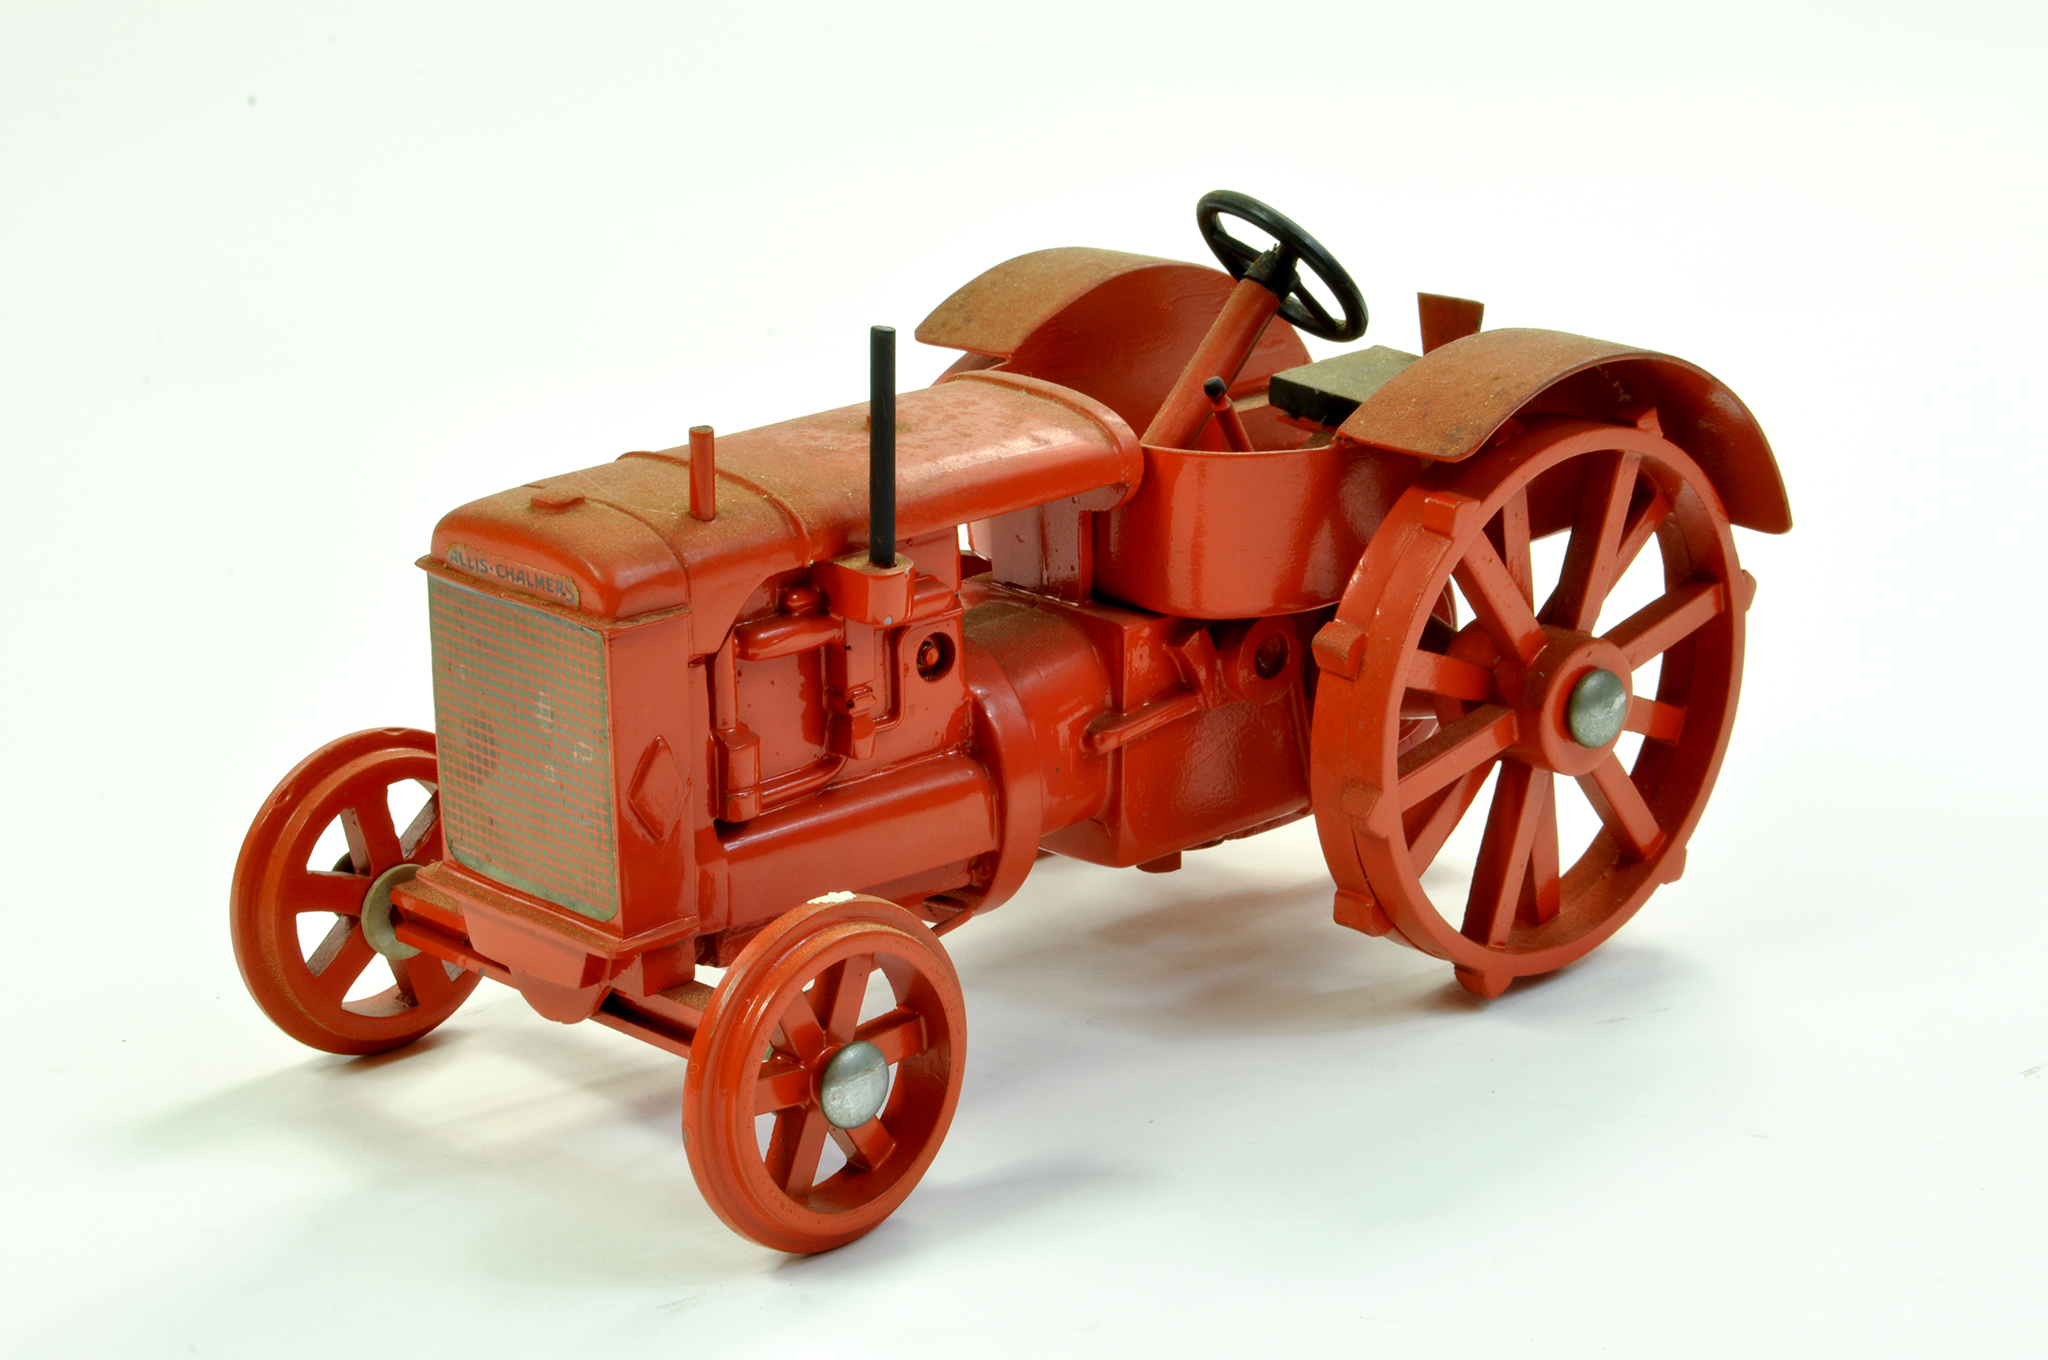 Lot 15 - Marbil Models 1/16 Allis Chalmers AC Vintage Tractor on Metal Wheels. Generally excellent however